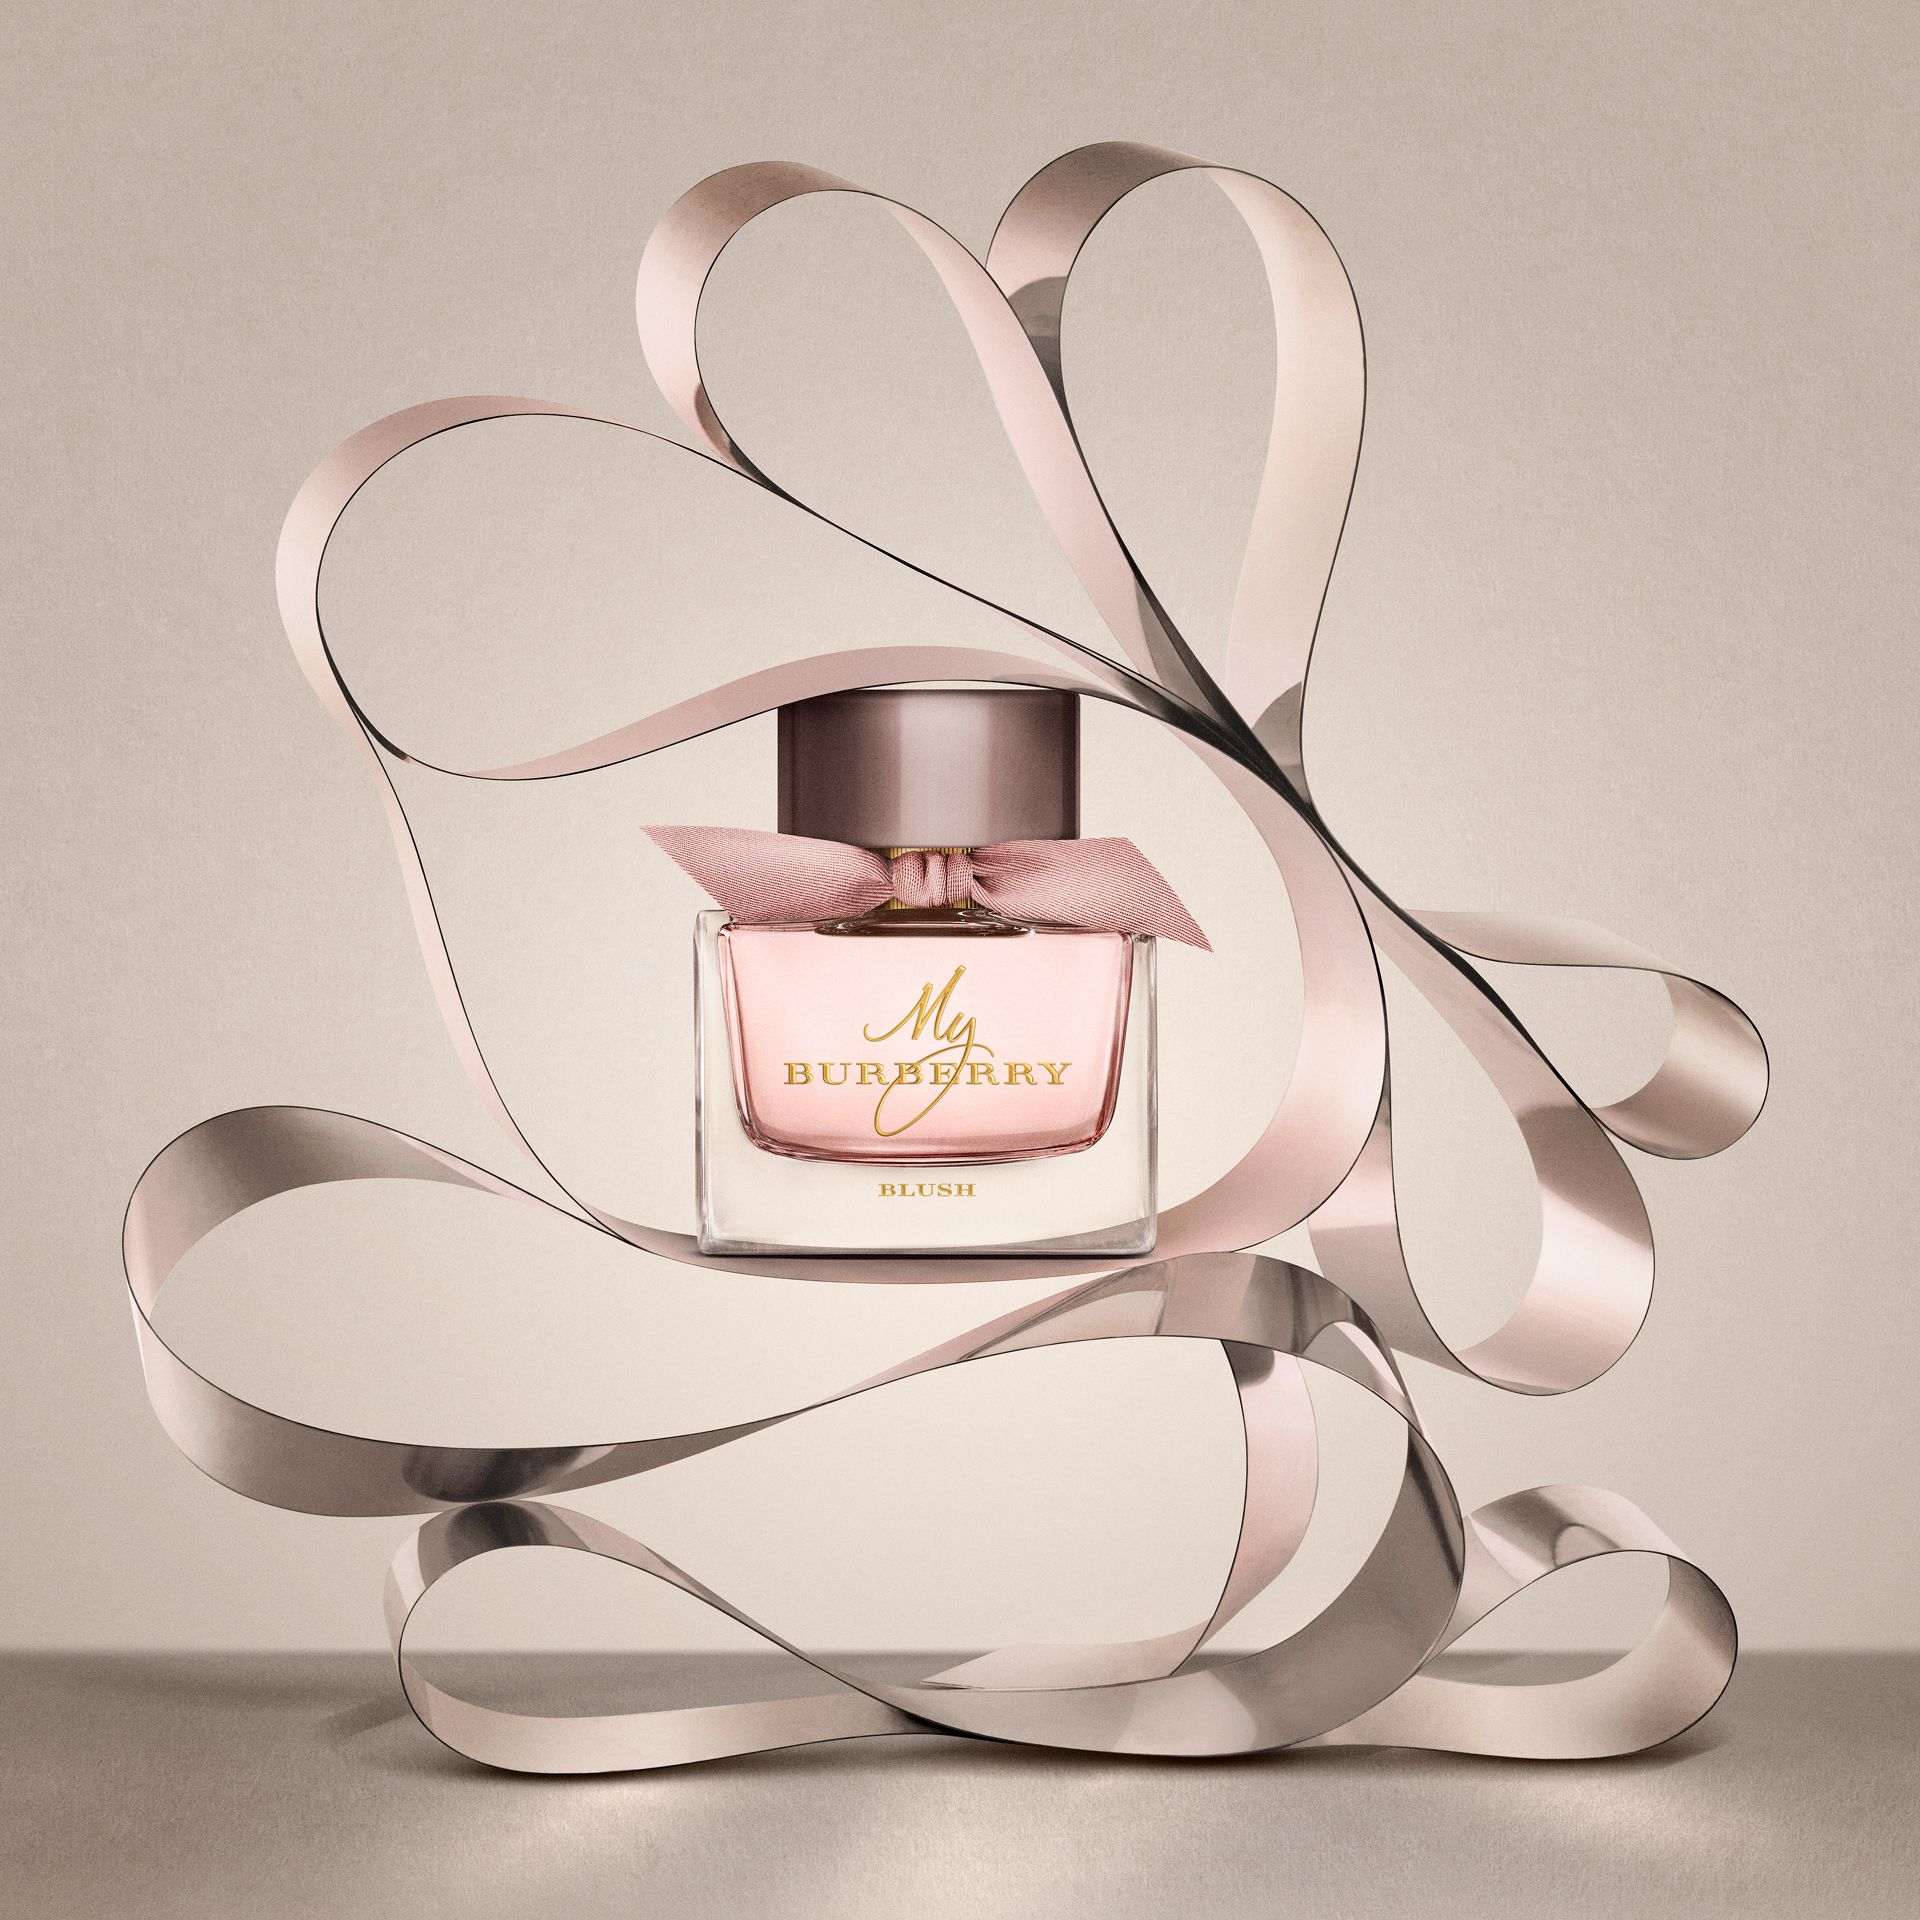 My Burberry Blush Eau de Parfum Festive Luxury Set in No Colour - Women | Burberry - gallery image 2